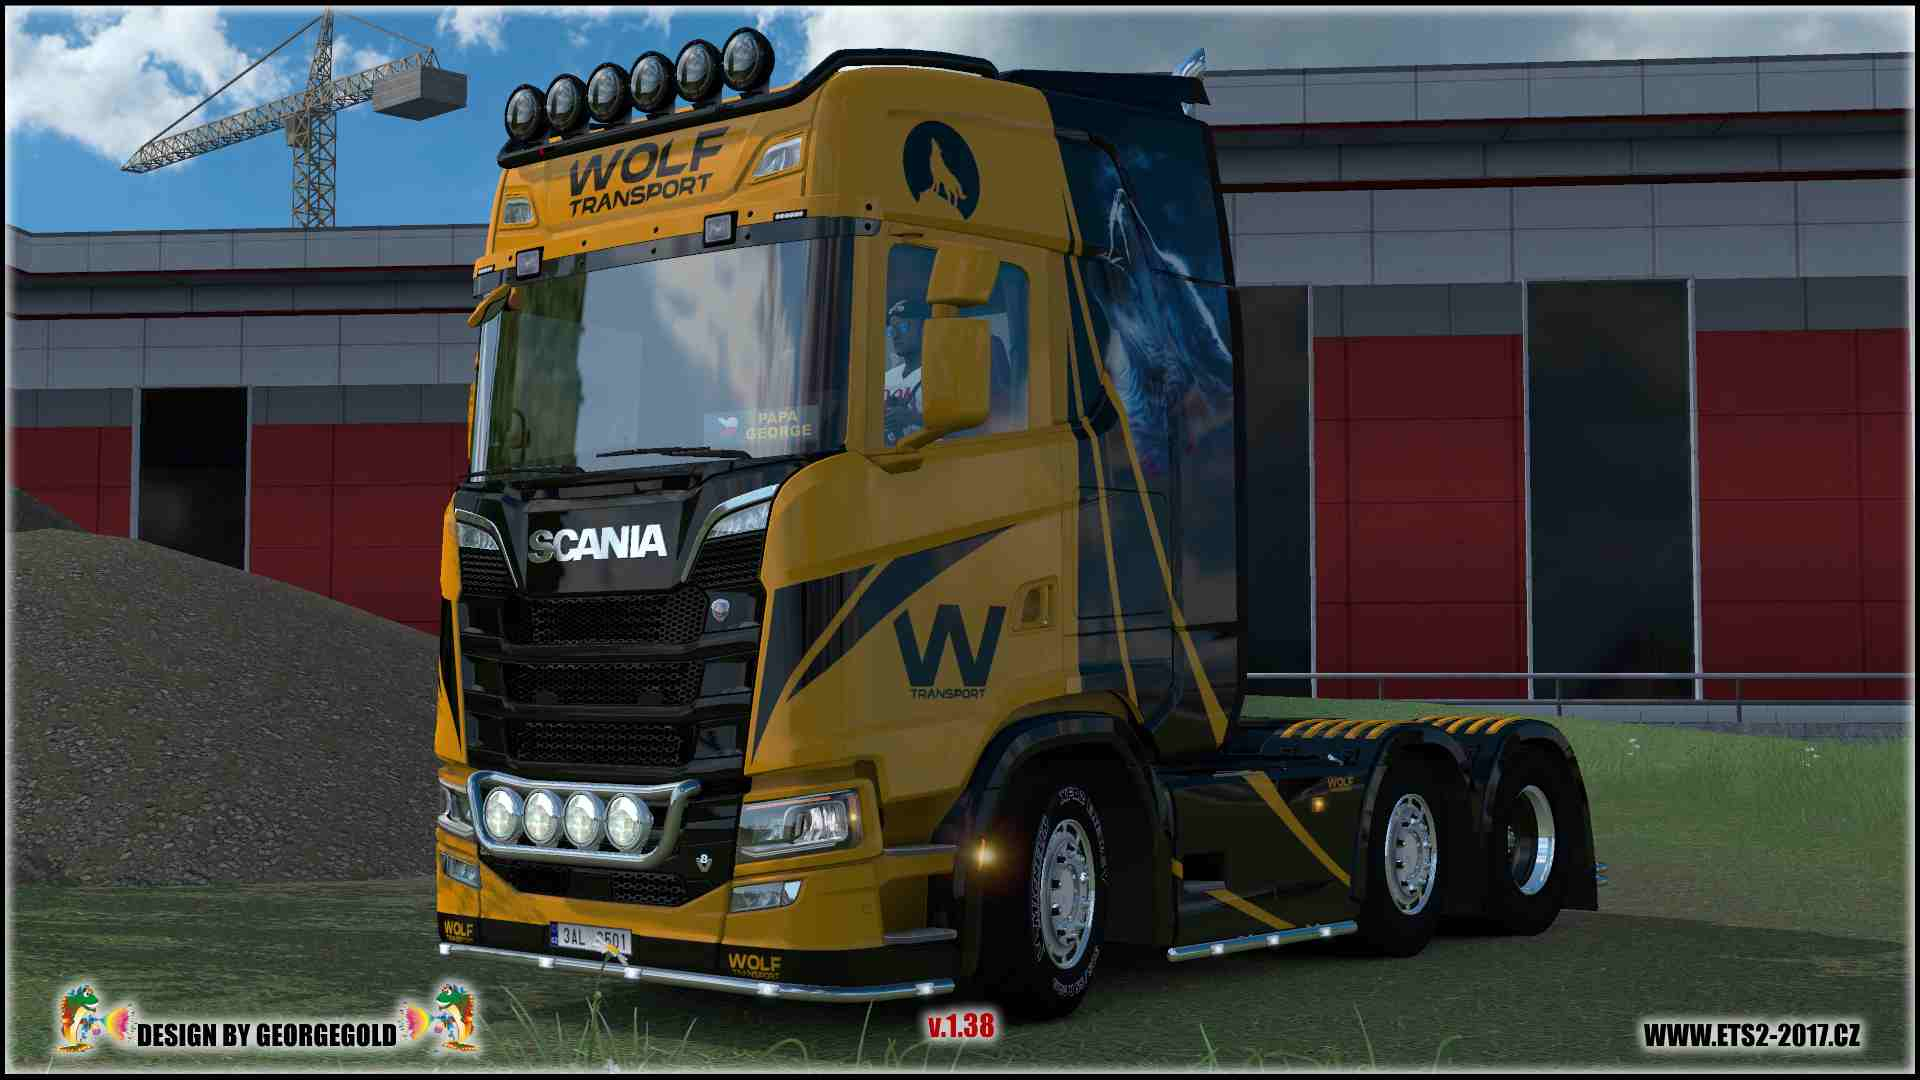 Scania S NG Wolf Transport